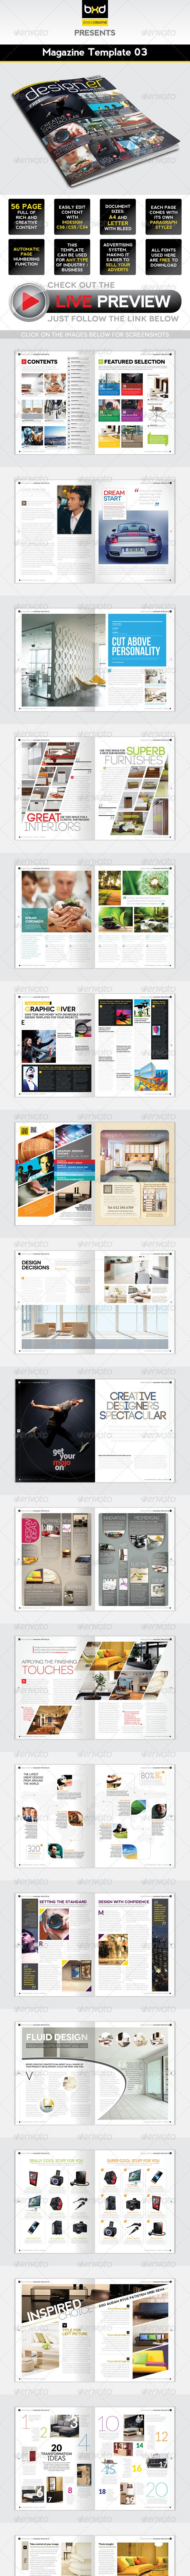 Magazine Template - InDesign 56 Page Layout V3 - Magazines Print Templates